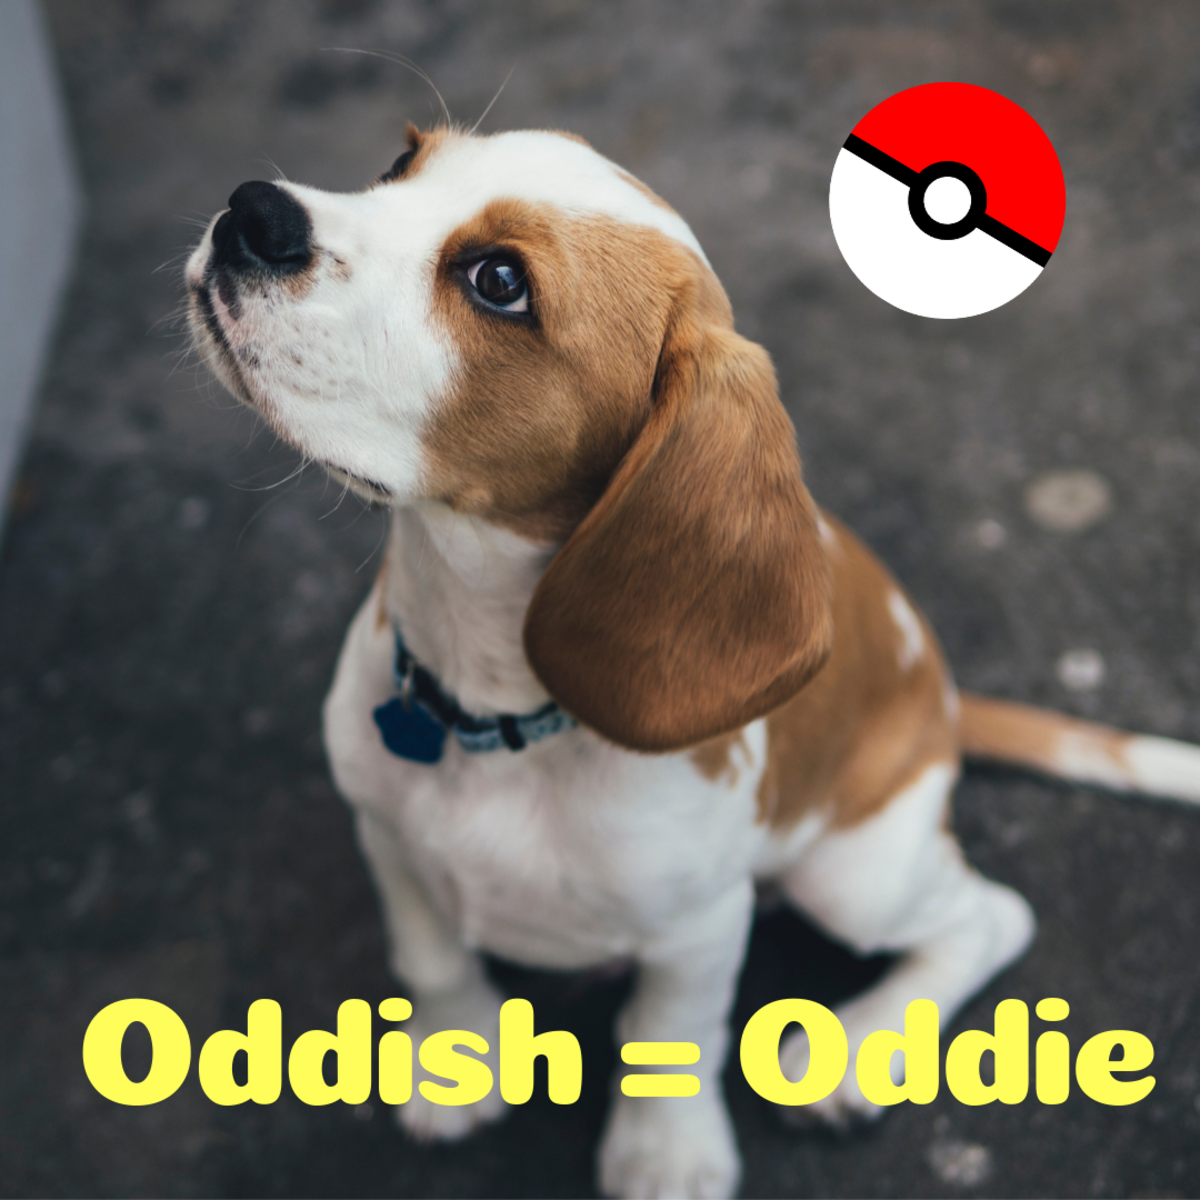 Is he an Oddie?